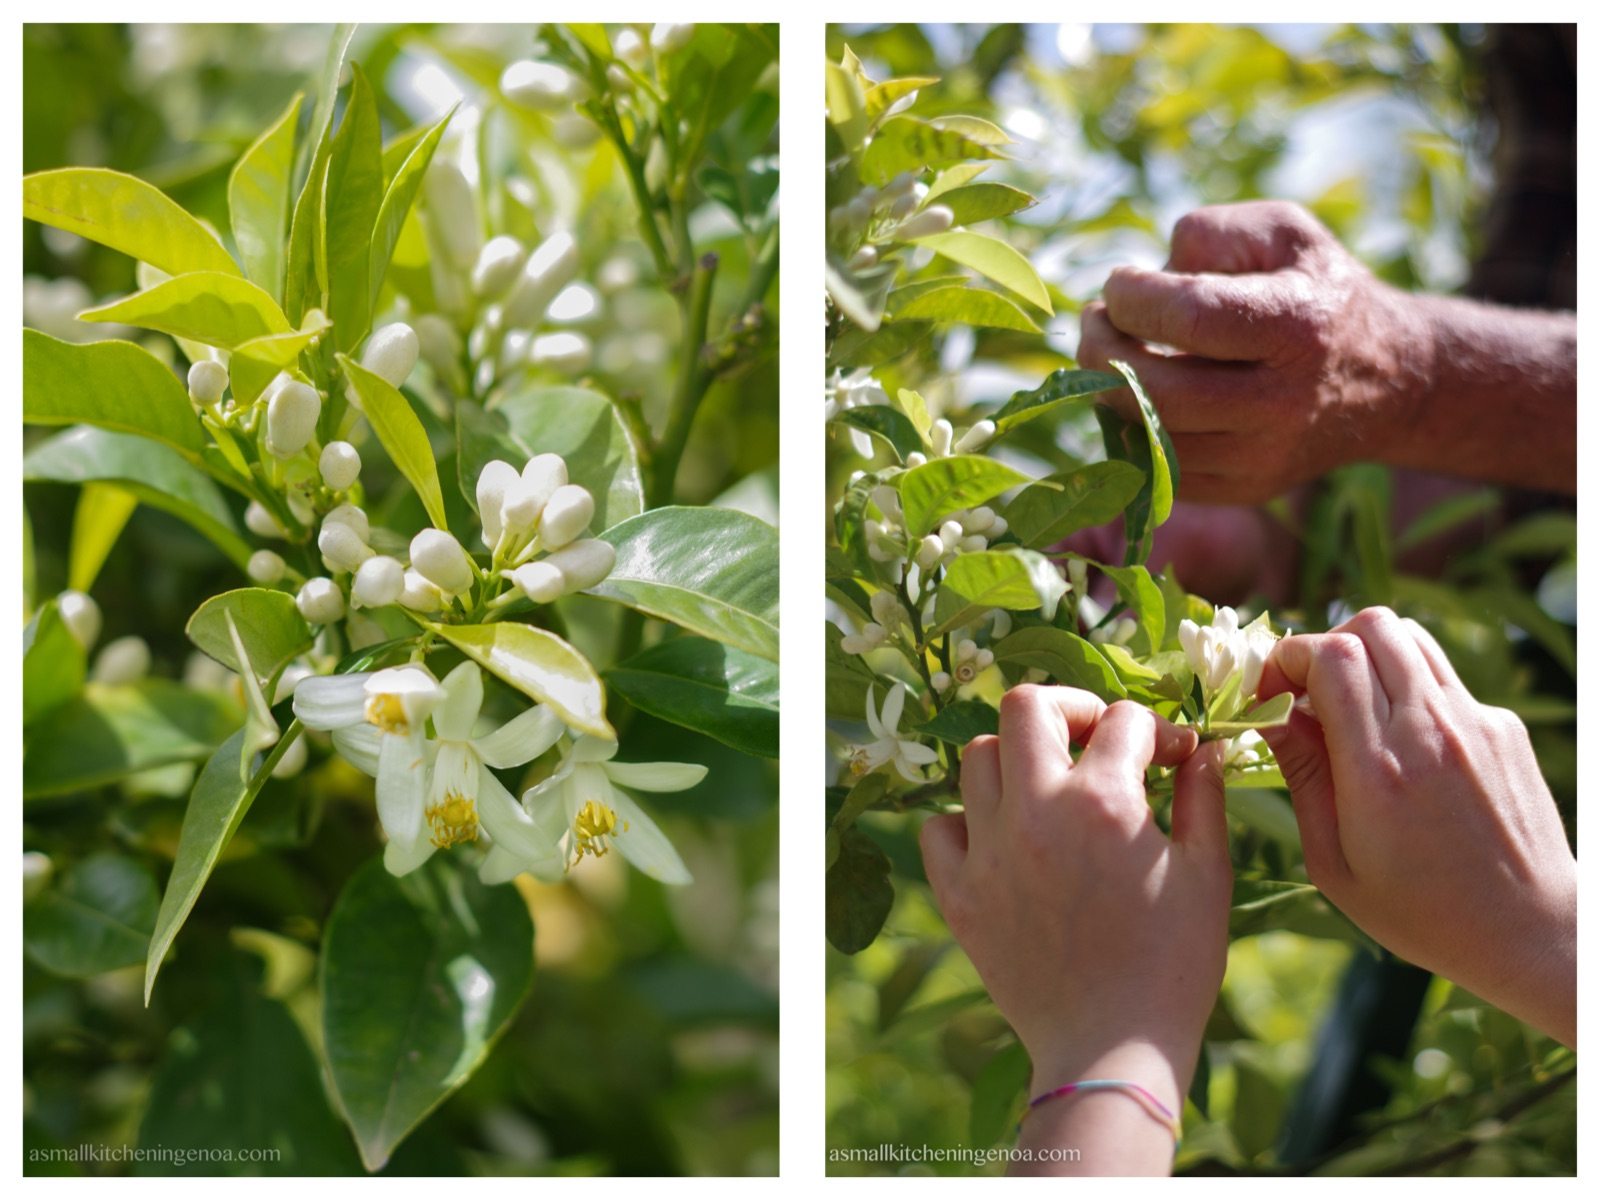 harvesting bitter orange blossoms for distilling water